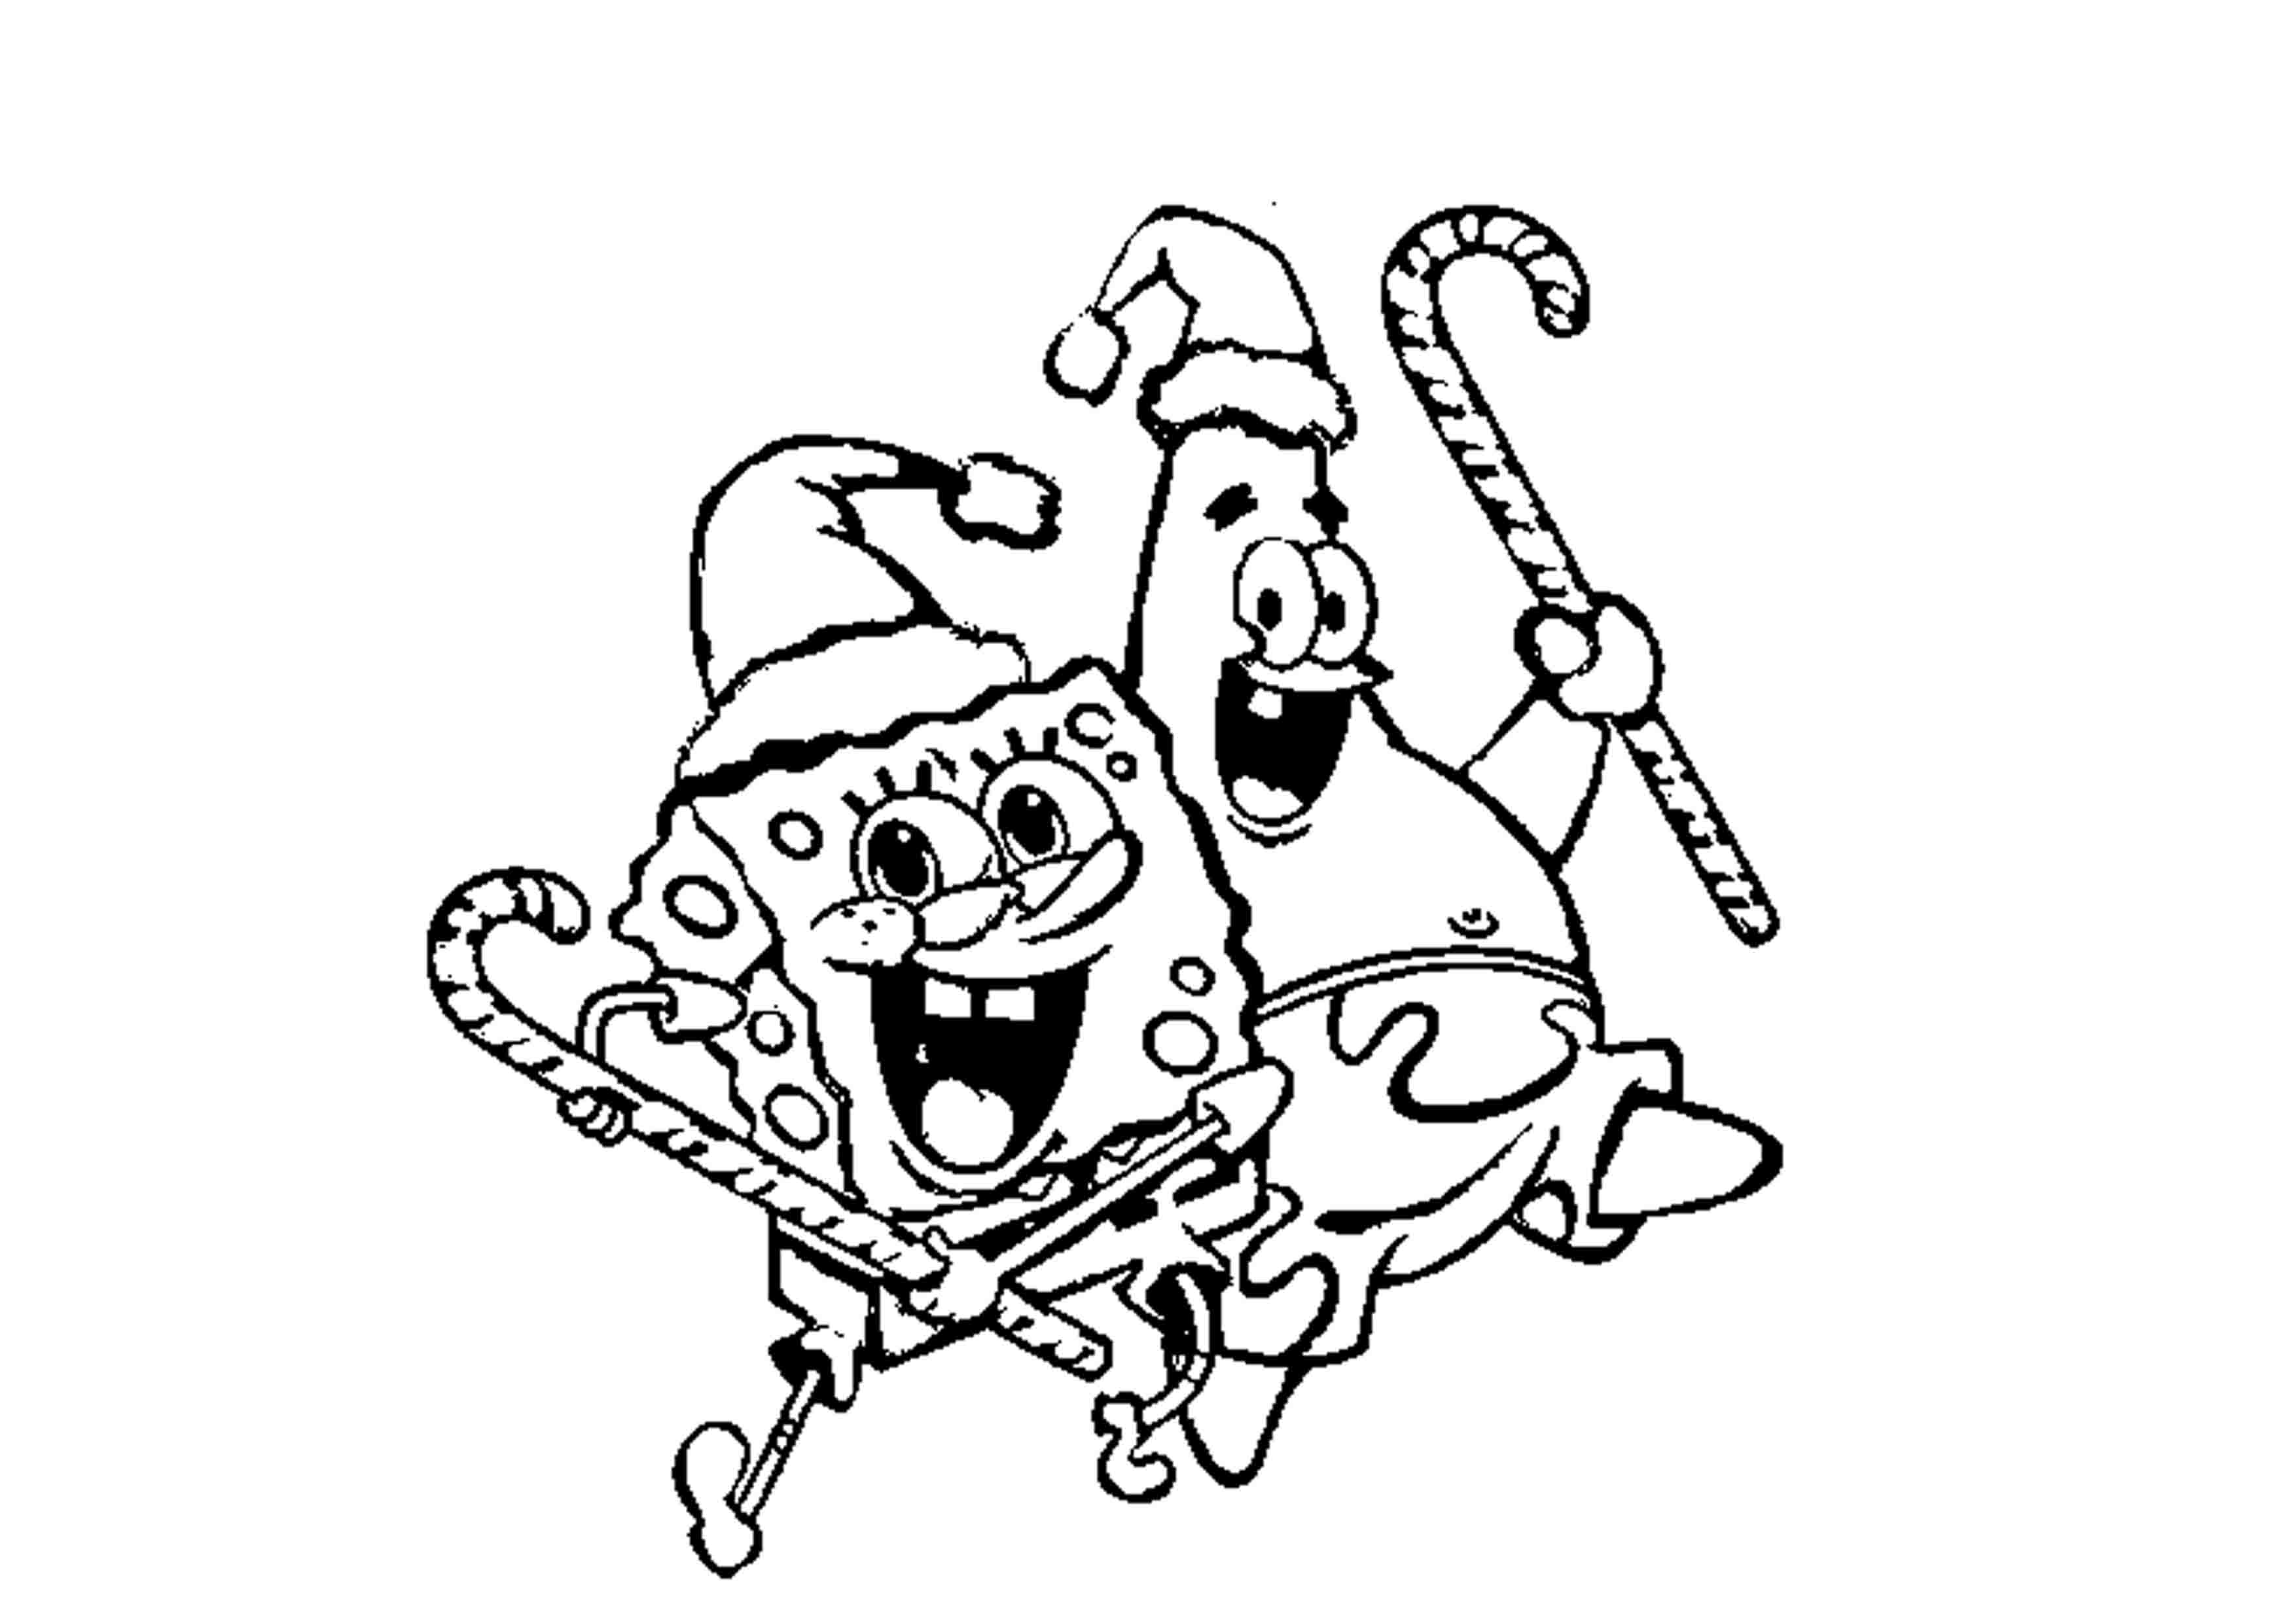 Patrick Spongebob Christmas Coloring Pages Printable